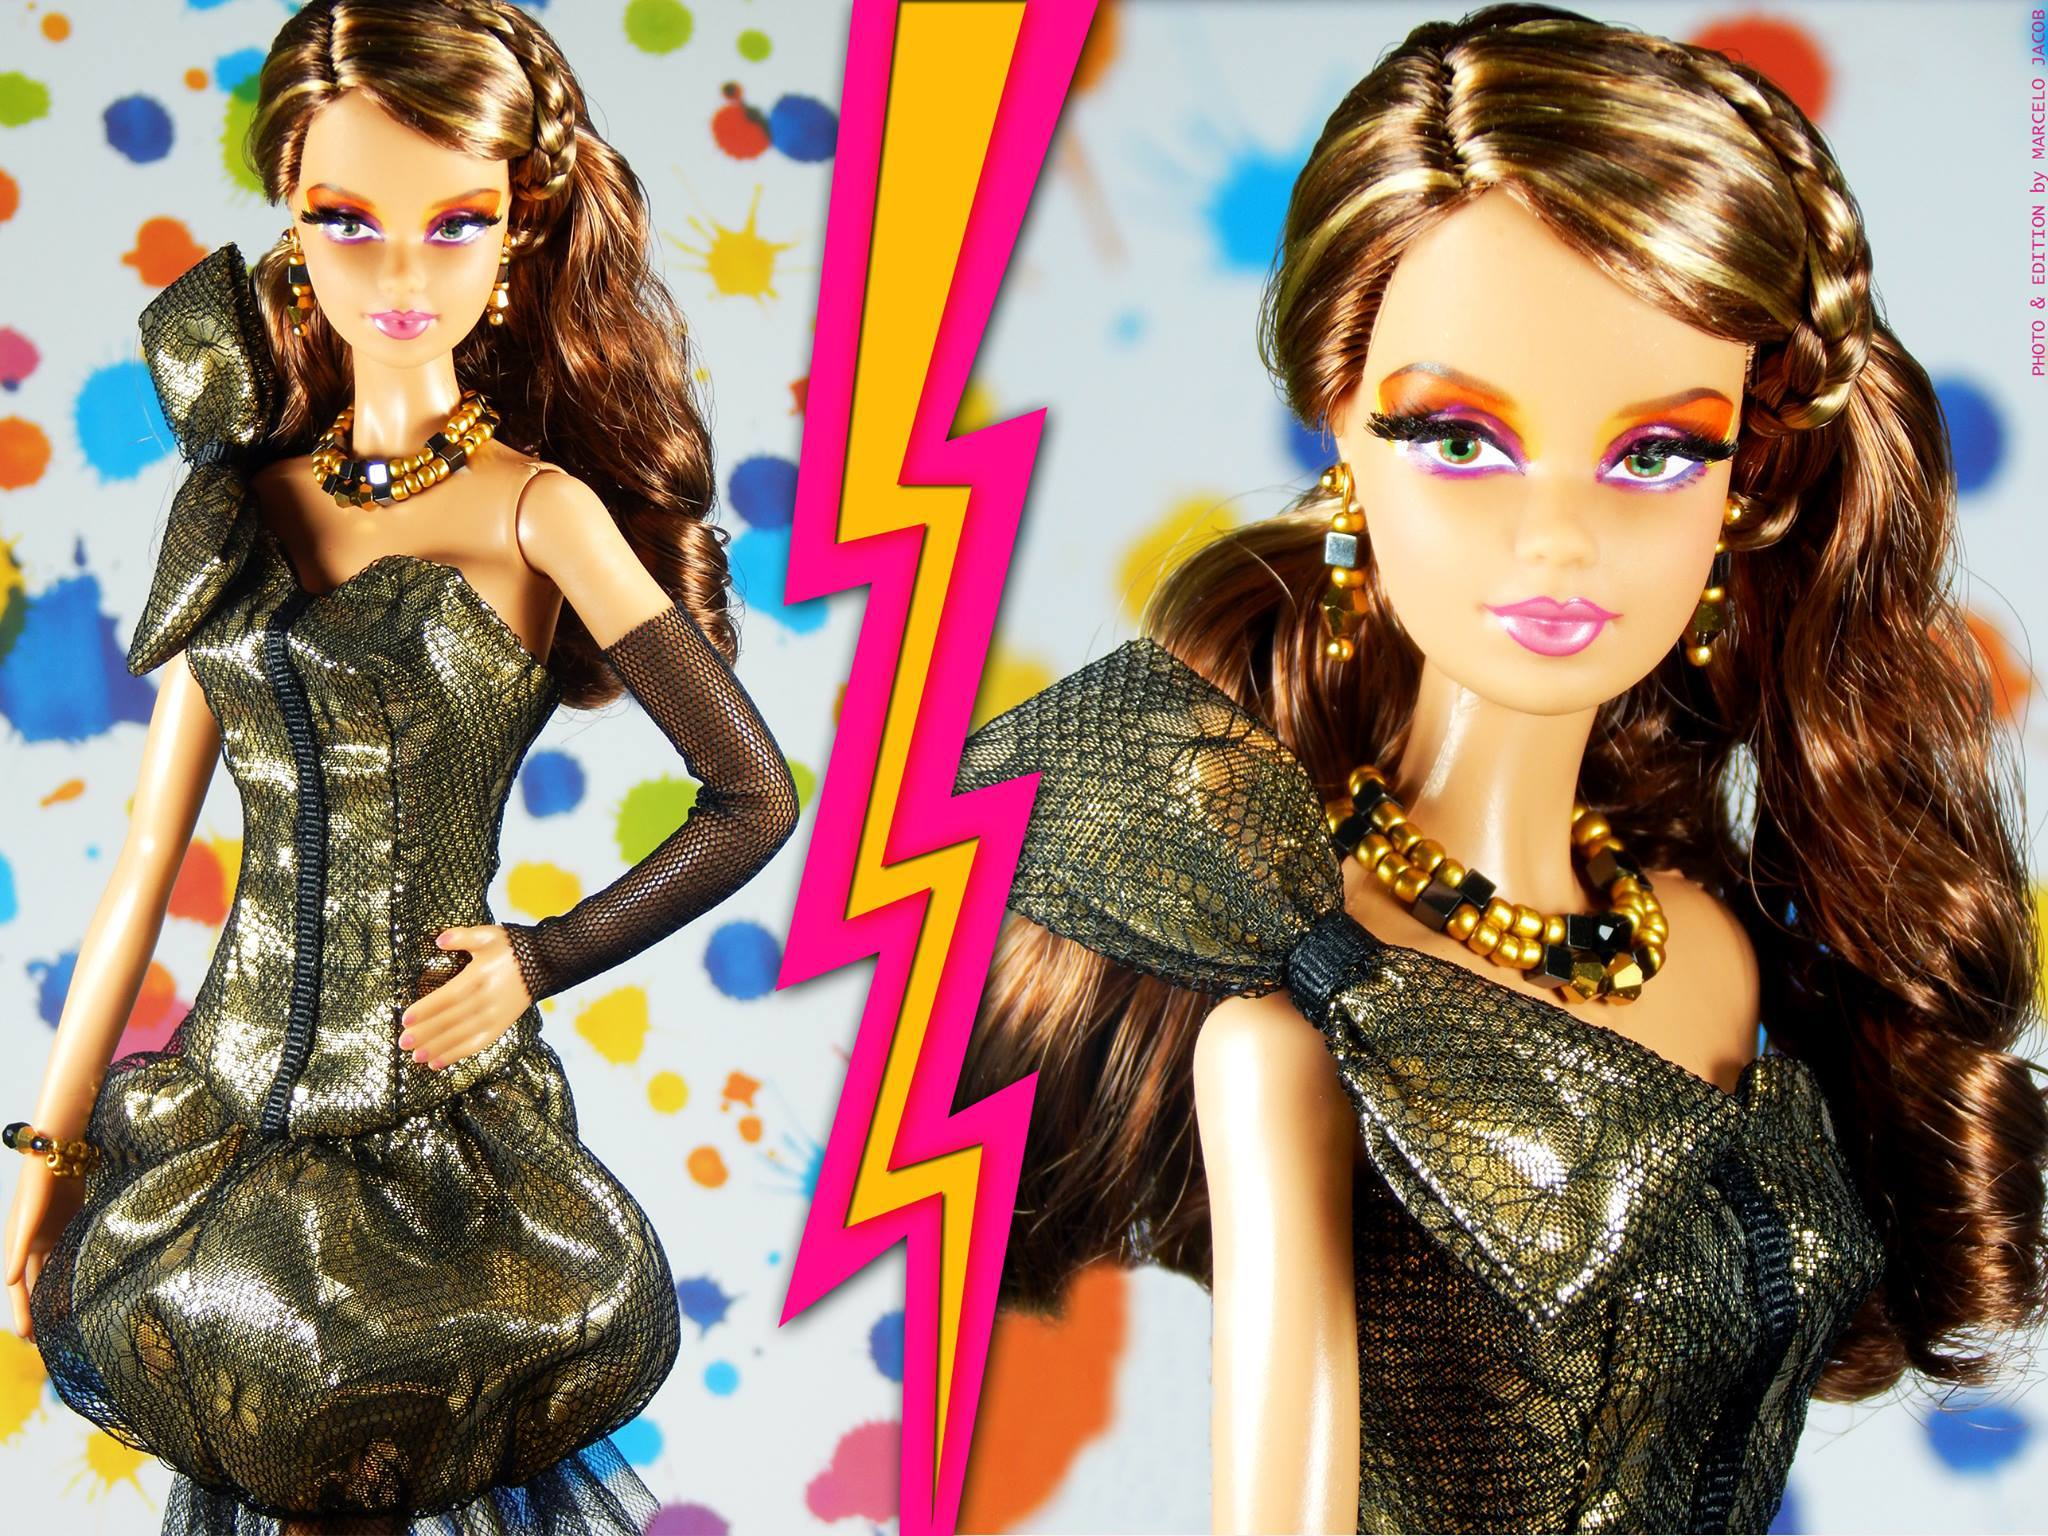 Target Barbie Fashionistas Dolls 2015 Golden Eternity Barbie